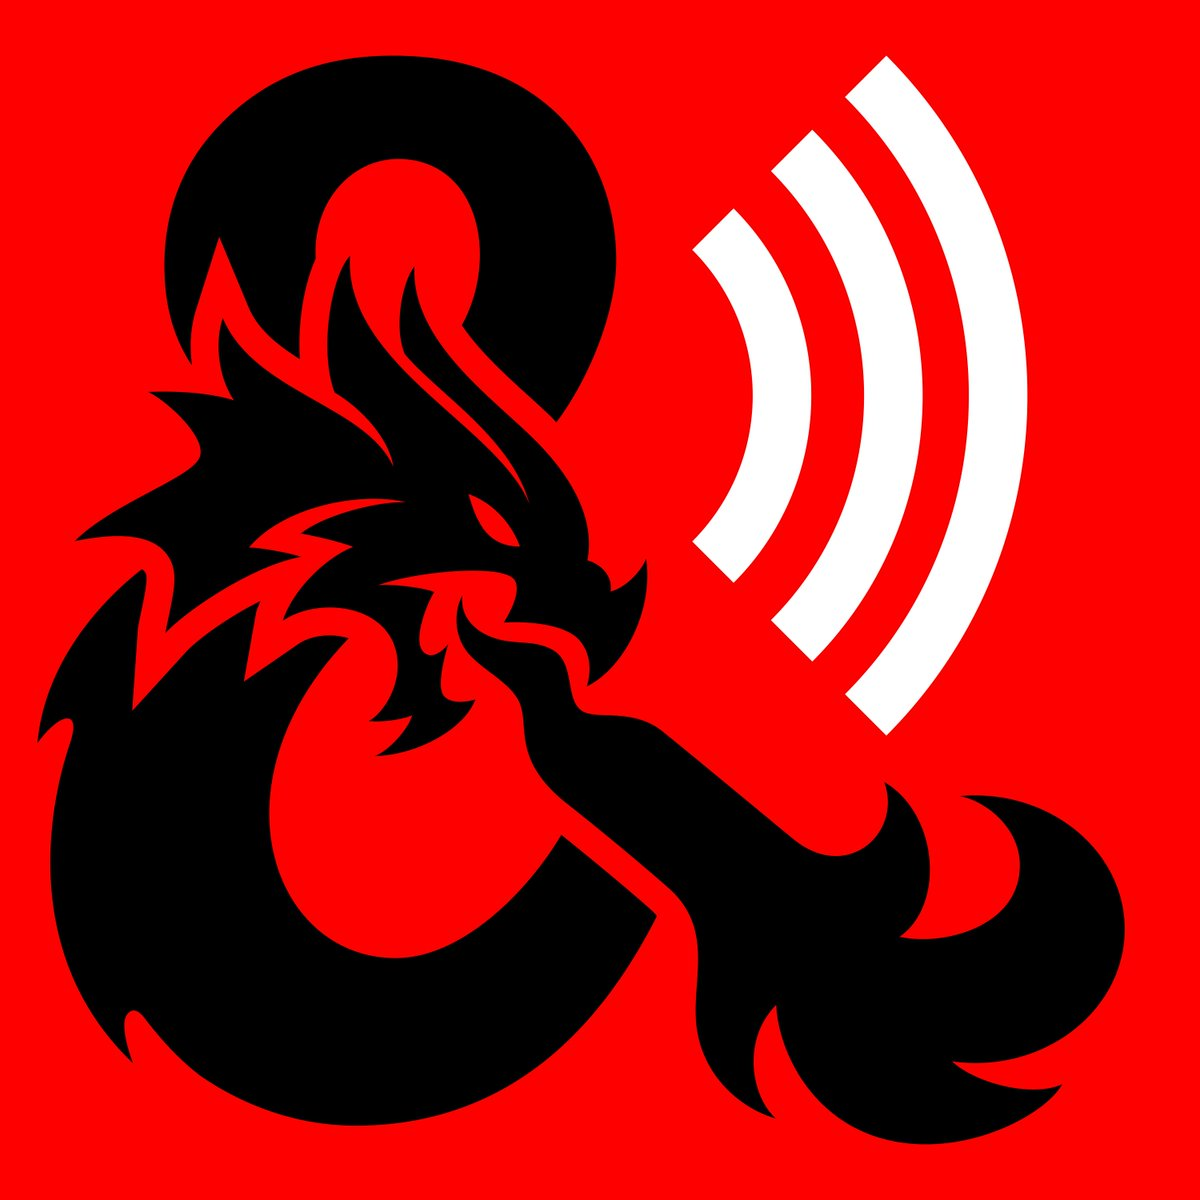 The latest episode of #DragonTalk, the official #DnD #Podcast, is up! Hosts @Gregtito and @shellymoo chat with @WWEEmberMoon about her love of #DungeonsAndDragons! Plus, @ChrisPerkinsDnD shares knights lore you should know. http://dnd.wizards.com/articles/features/dragontalk-embermoon…